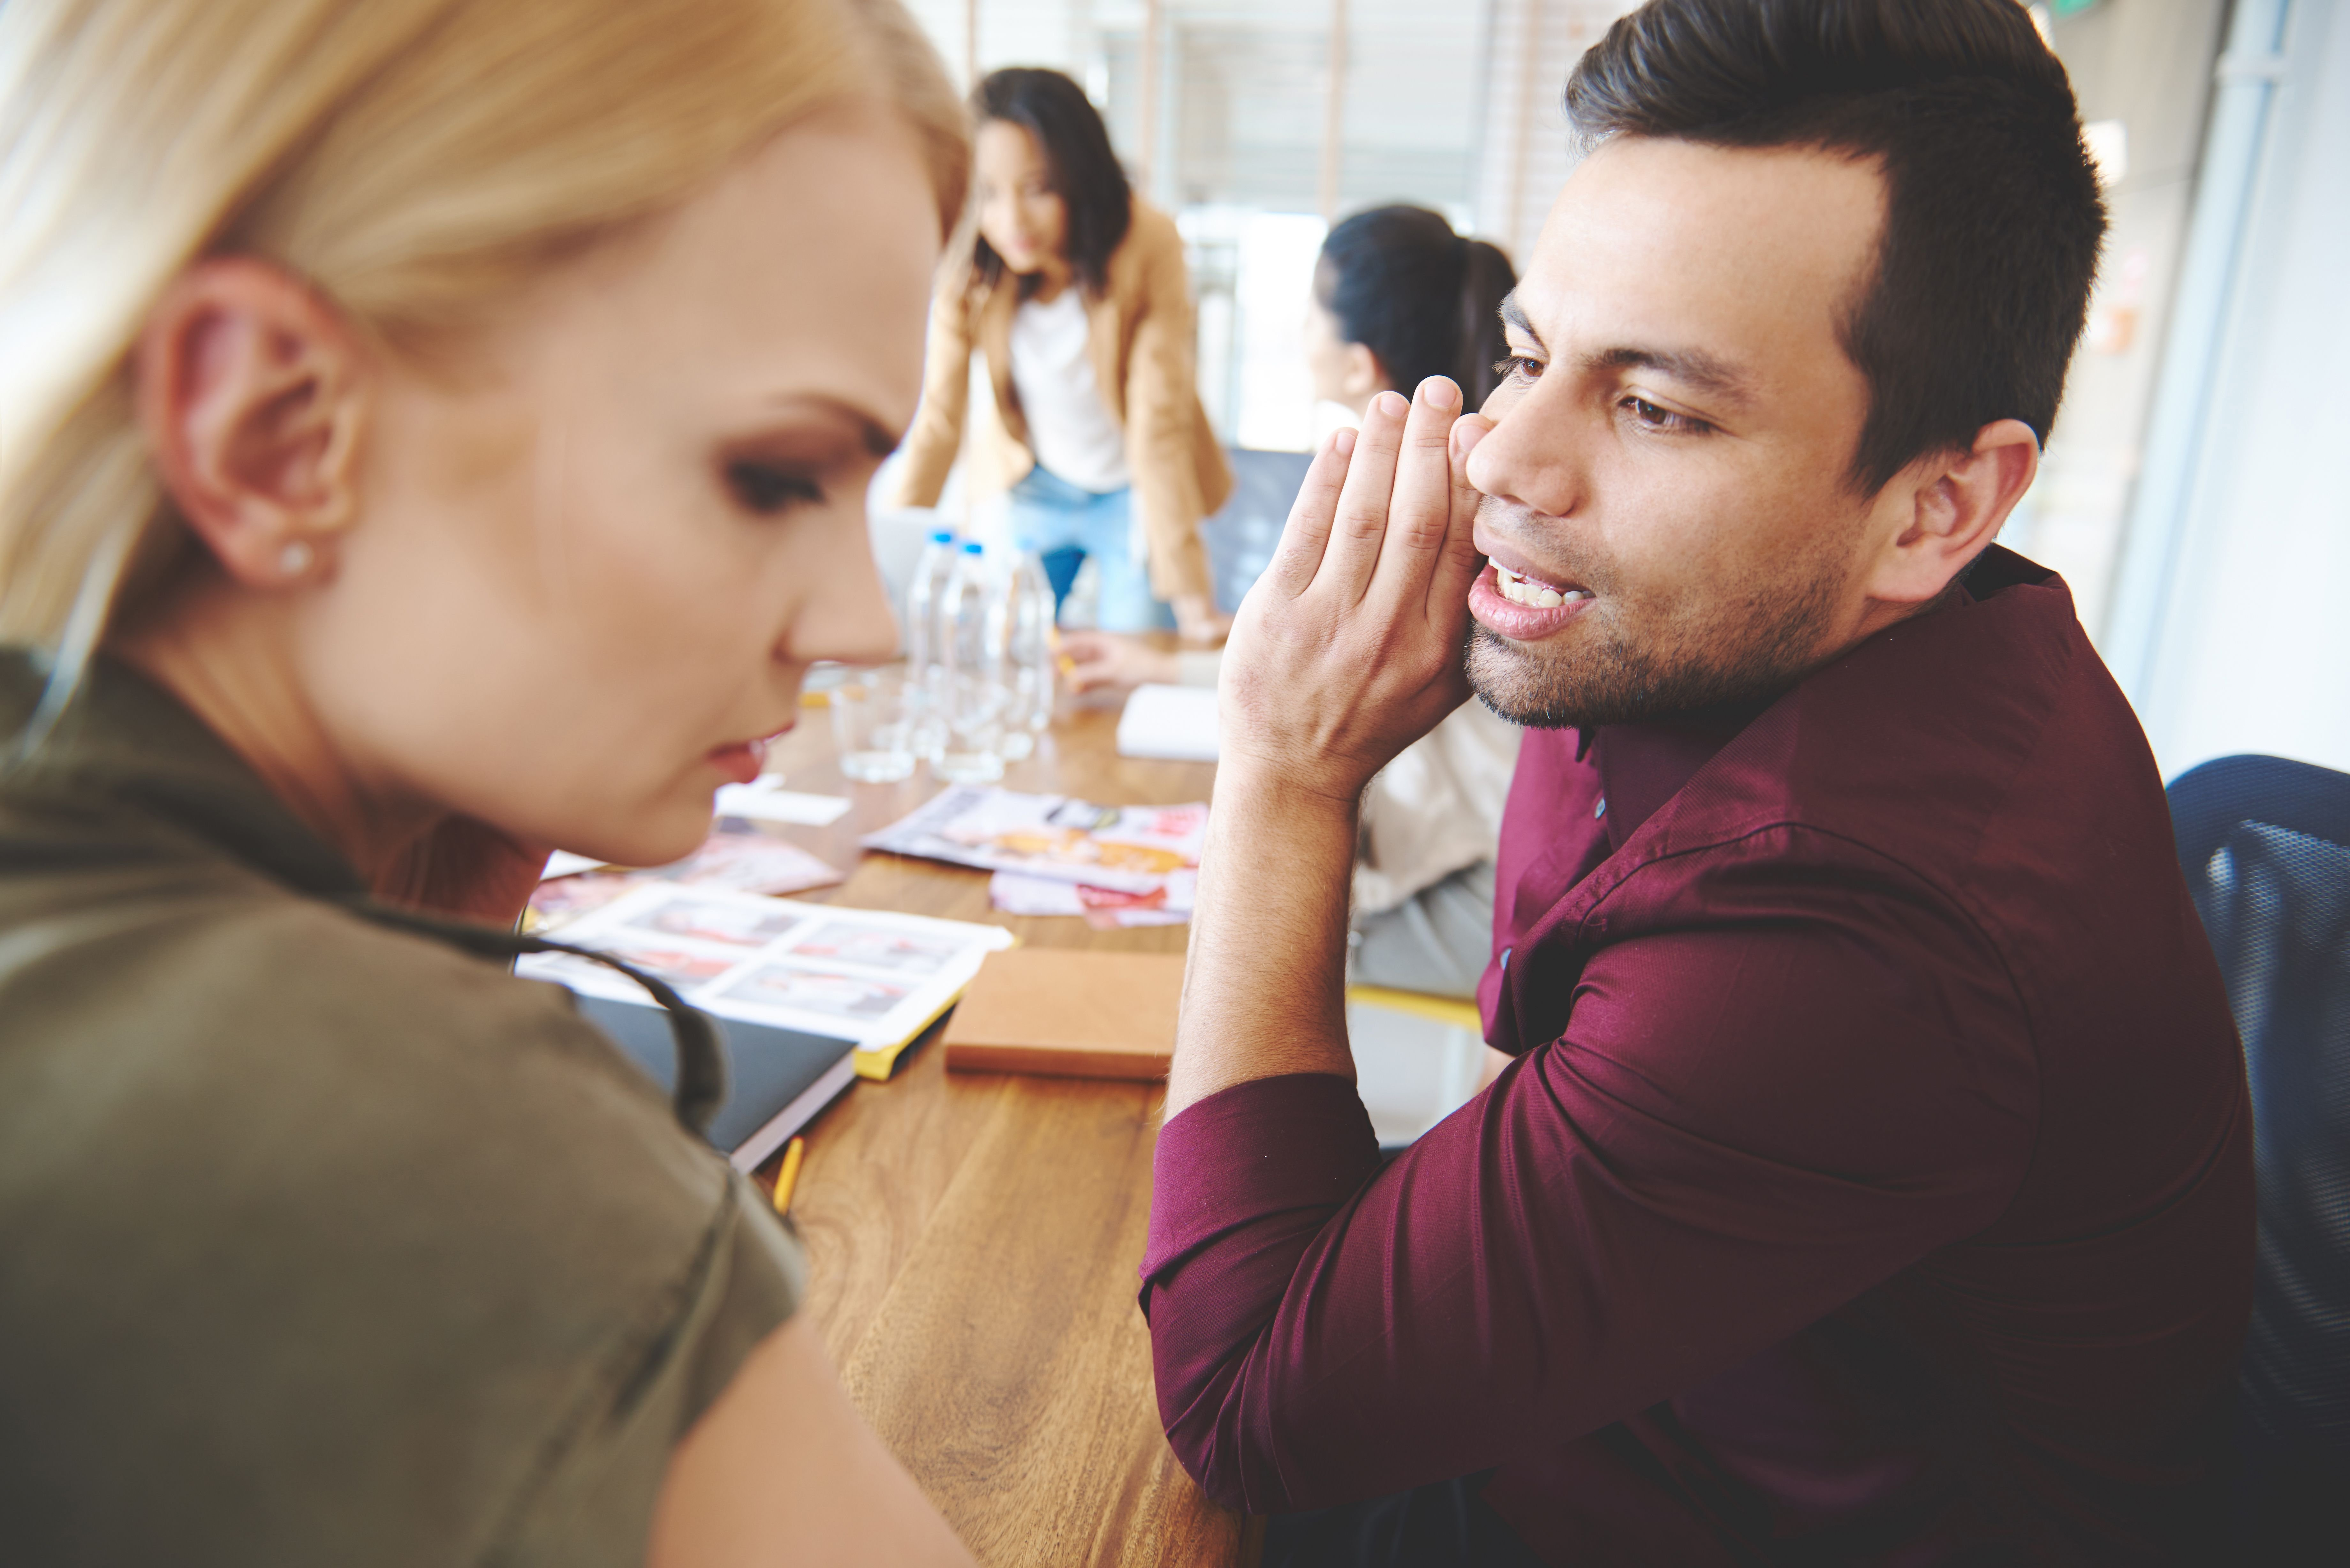 Co-workers whispering during a meeting at work. | Source: Shutterstock